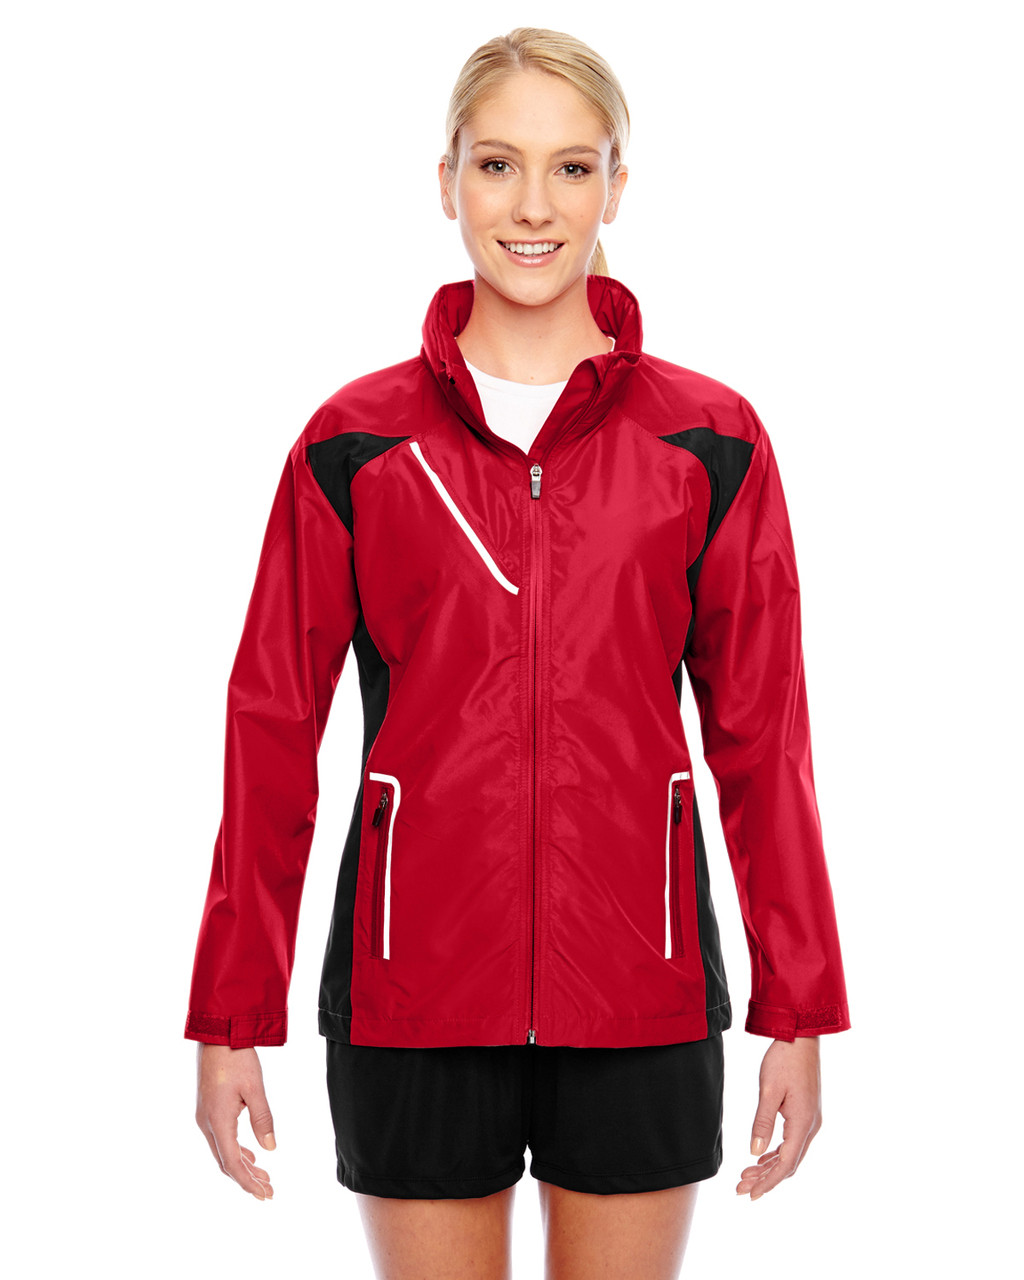 Sport Red - TT86W Team 365 Dominator Waterproof Jacket